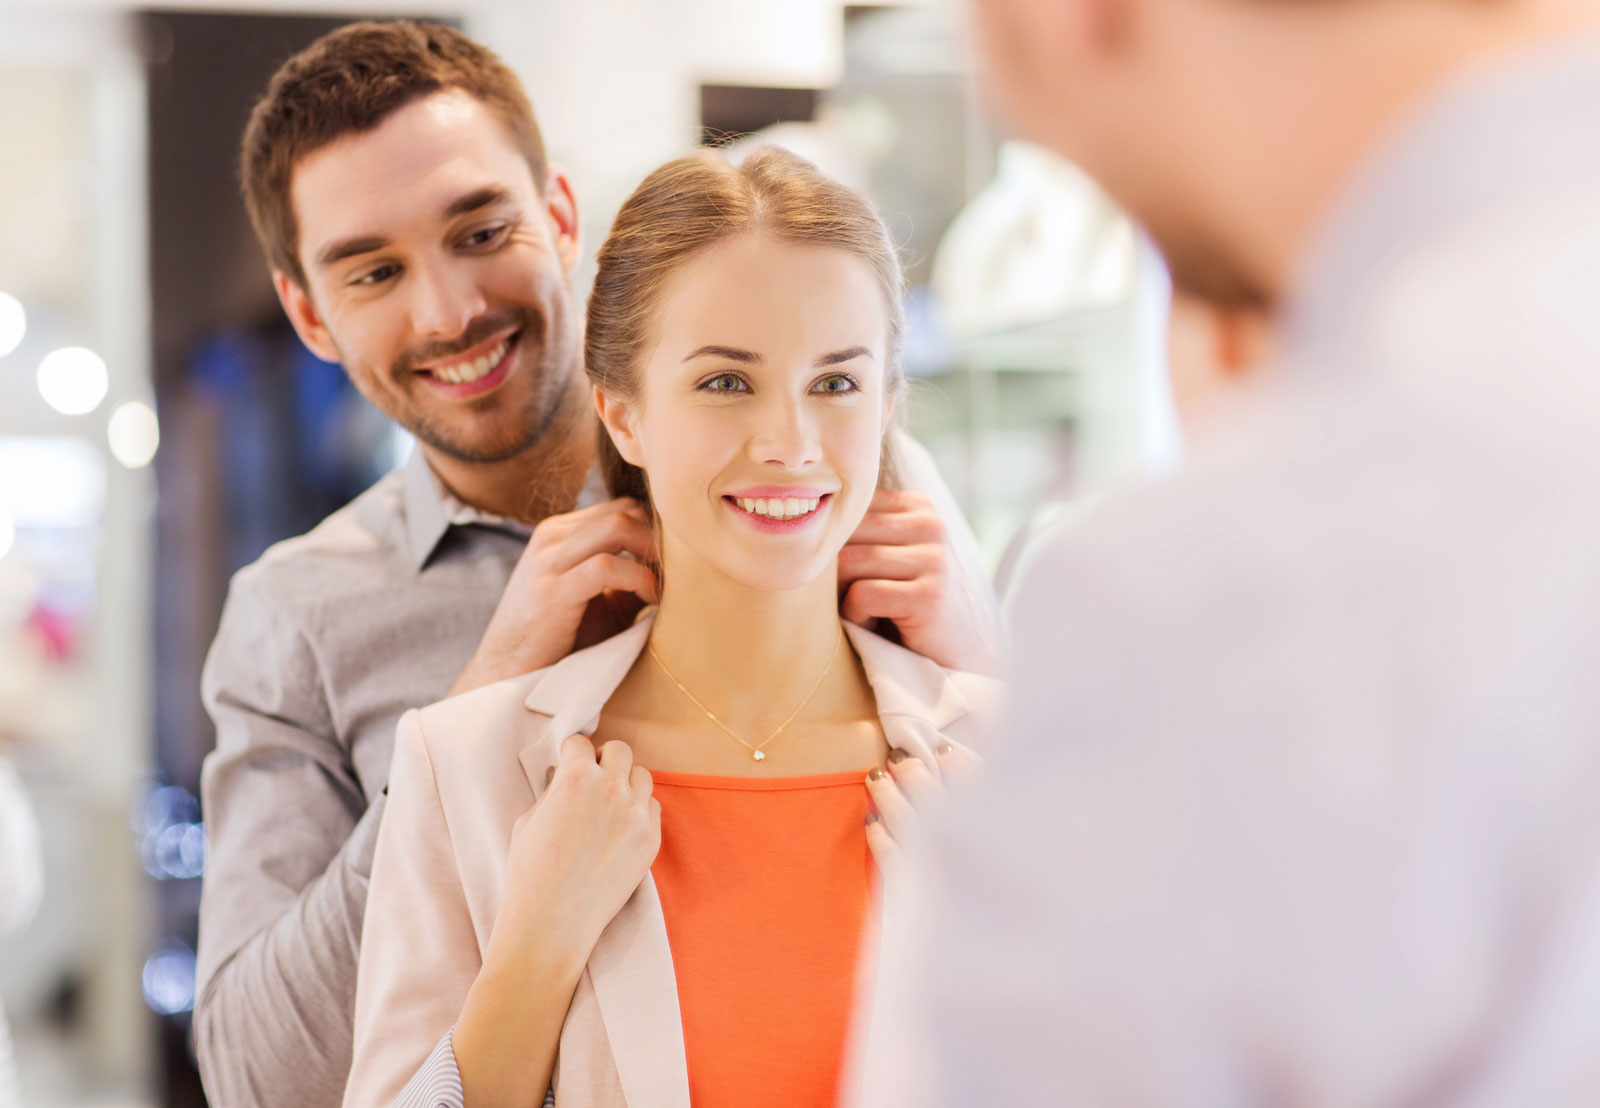 Man Putting Necklace on Woman   How To Pick Out The Best Jewelry Gifts For A Loved One